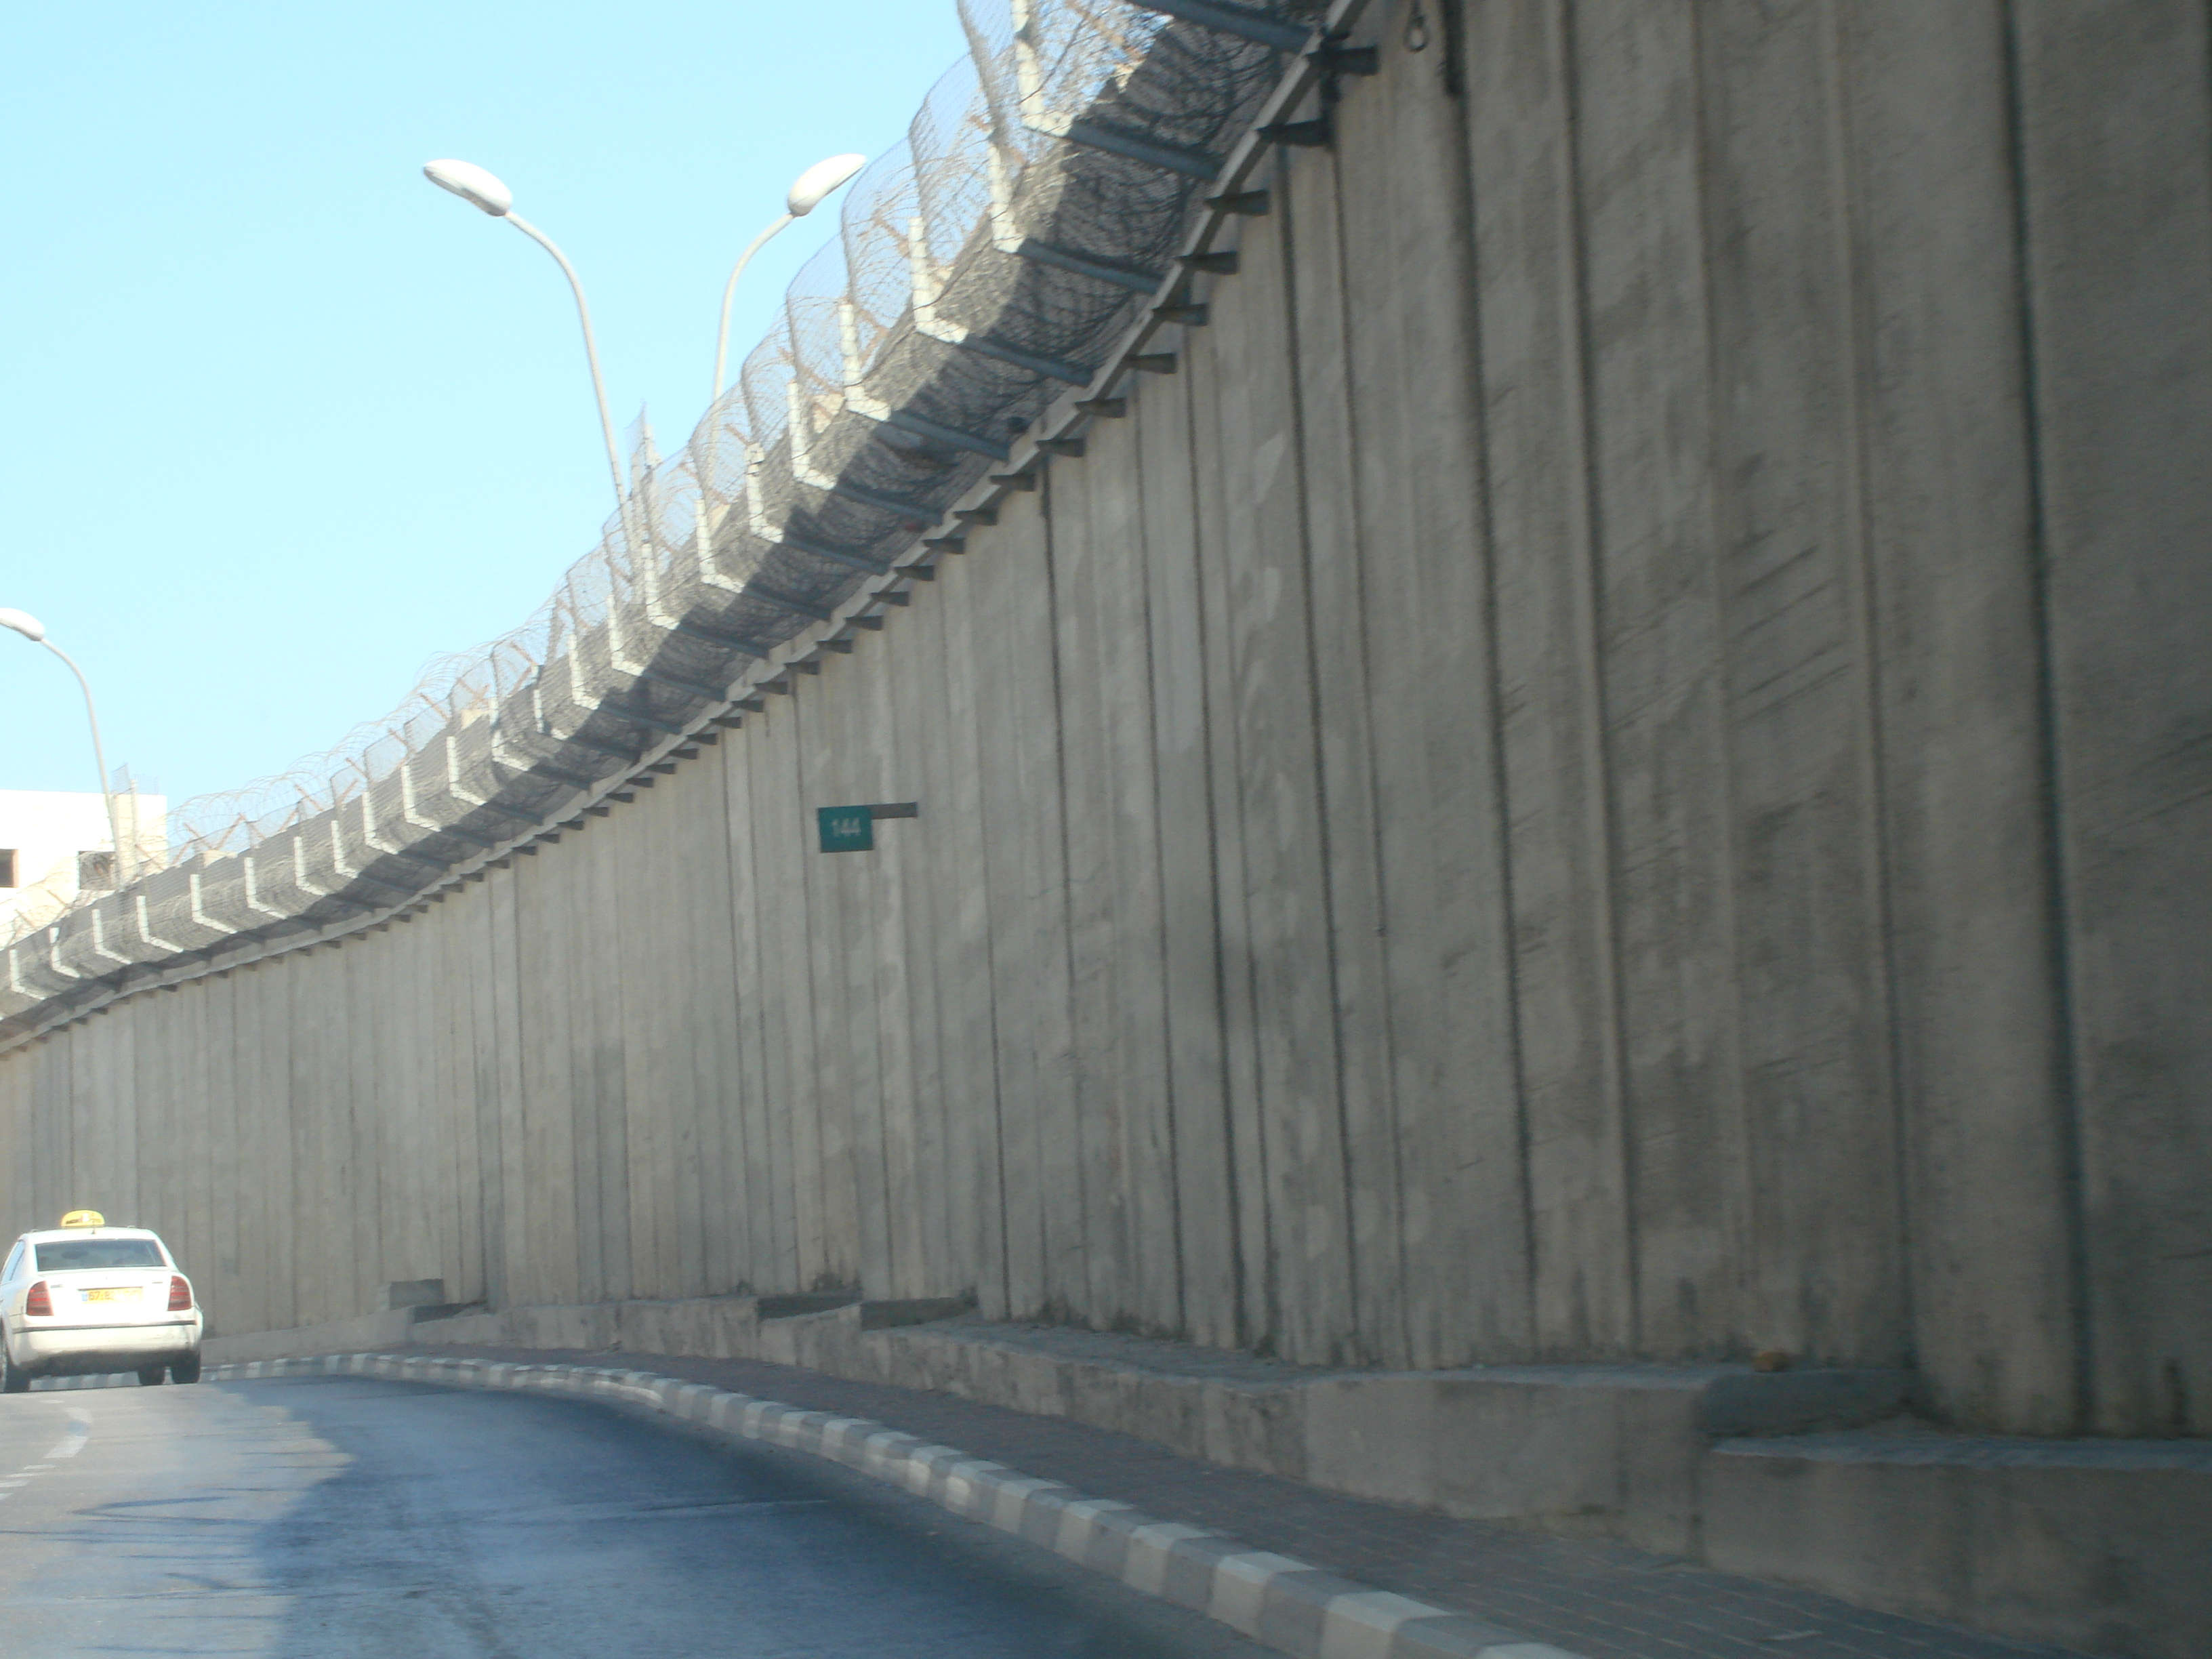 Israel-Palestine Wall | Carolyn's Travel Stories